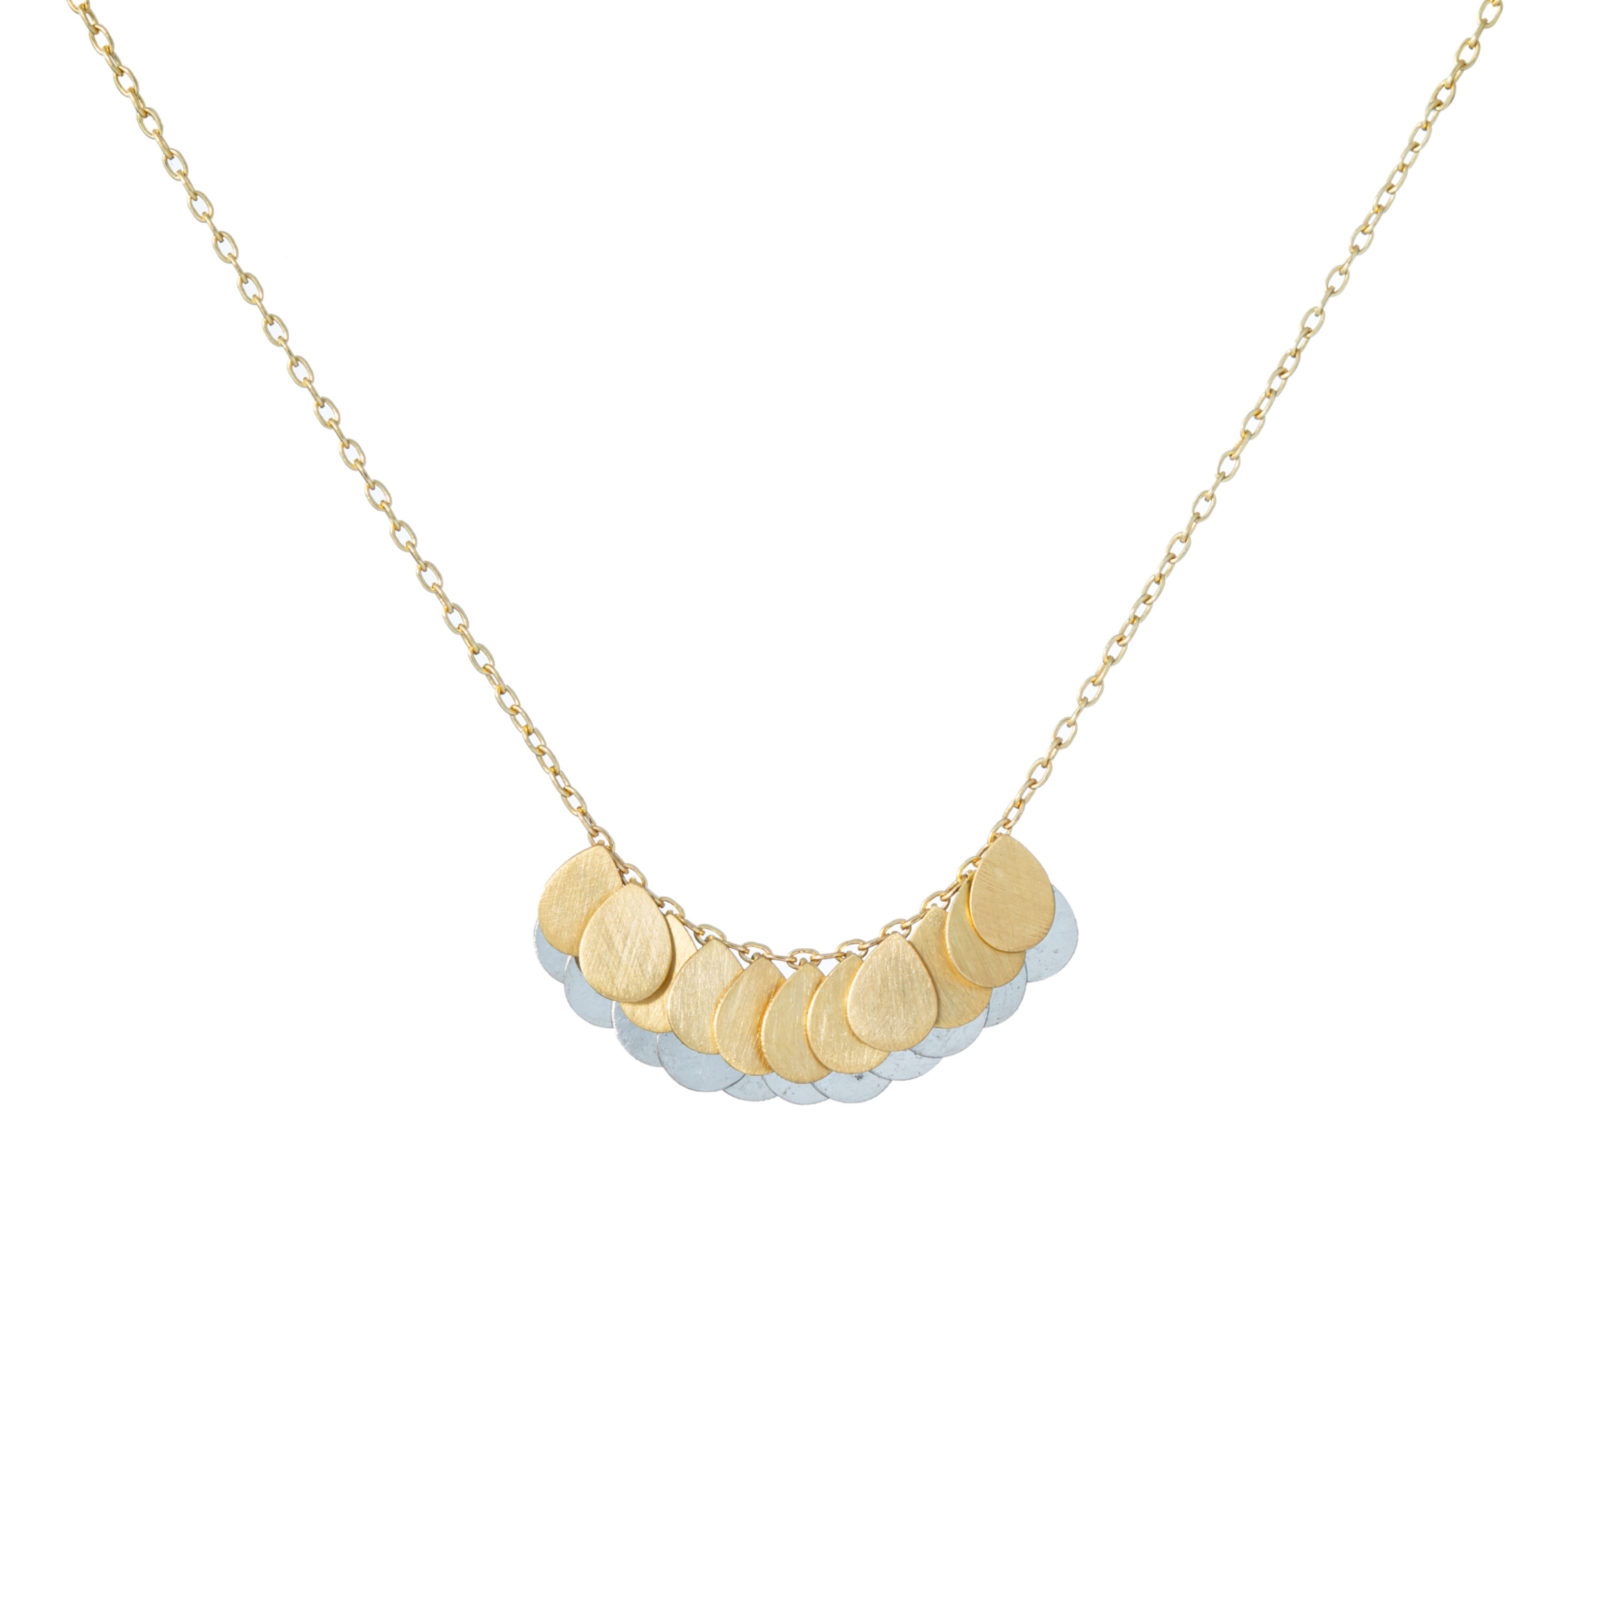 Sia Taylor FN4 YP Yellow Gold Platinum Necklace WB